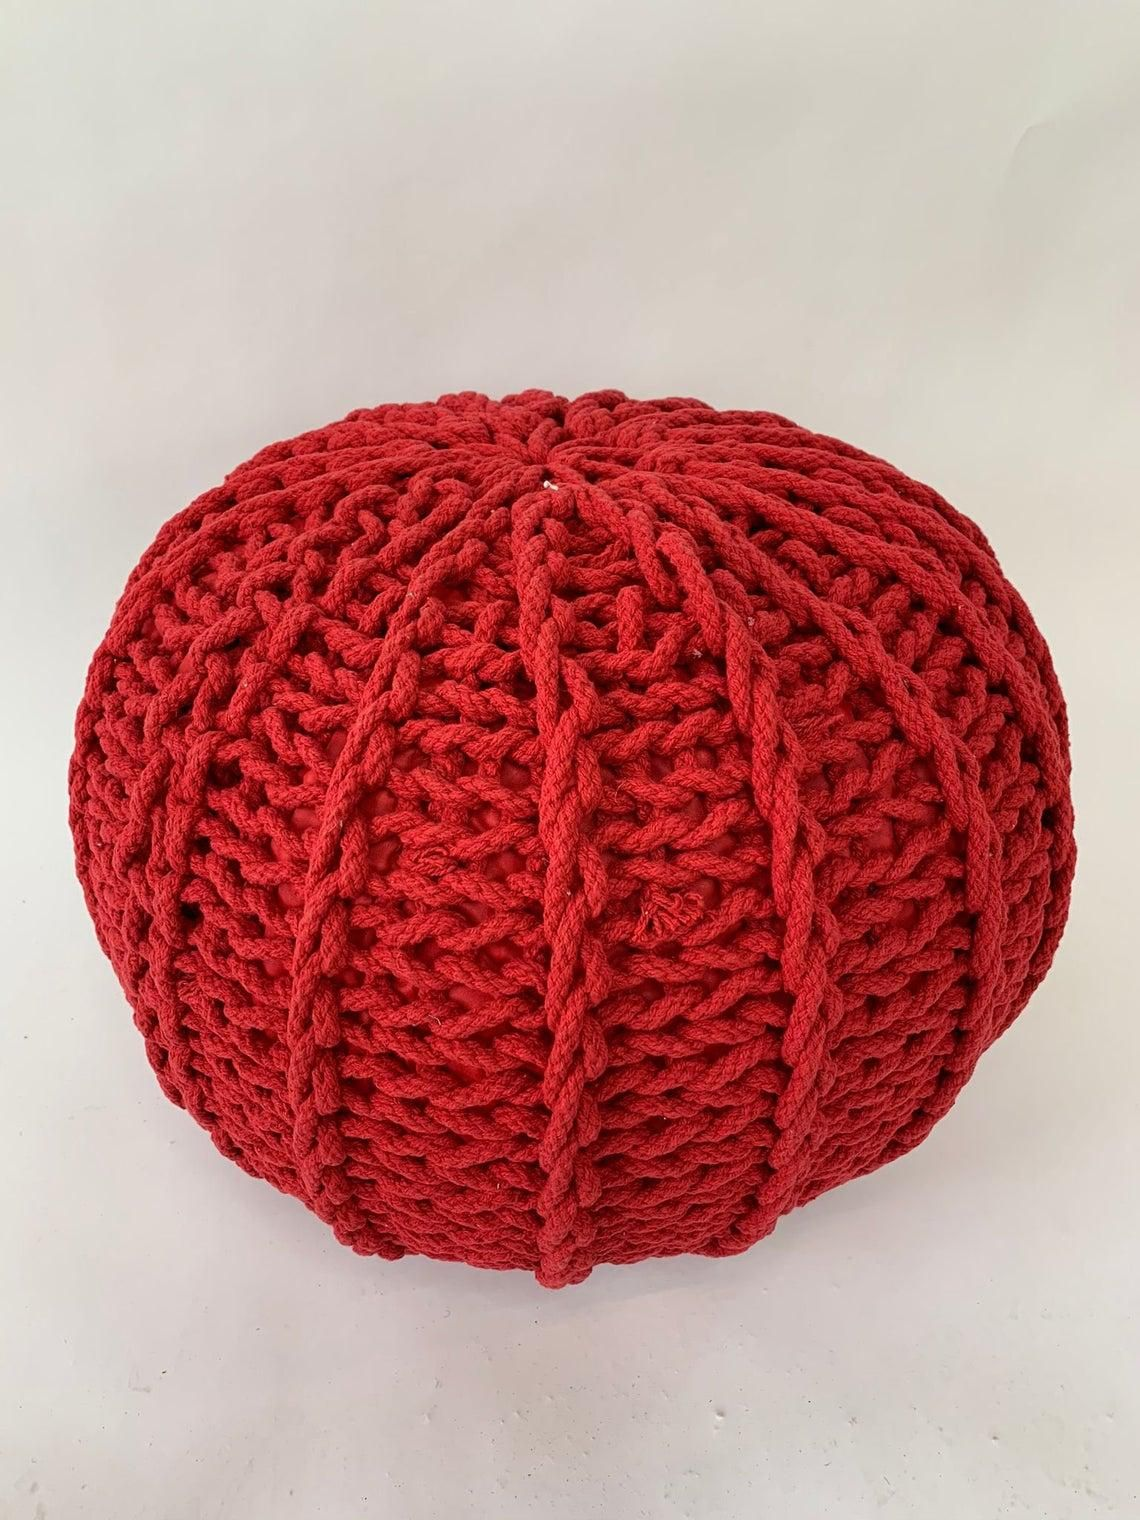 Knitted Round Foot Stool Twizler 100% Cotton Ottoman Braided Red Pouf